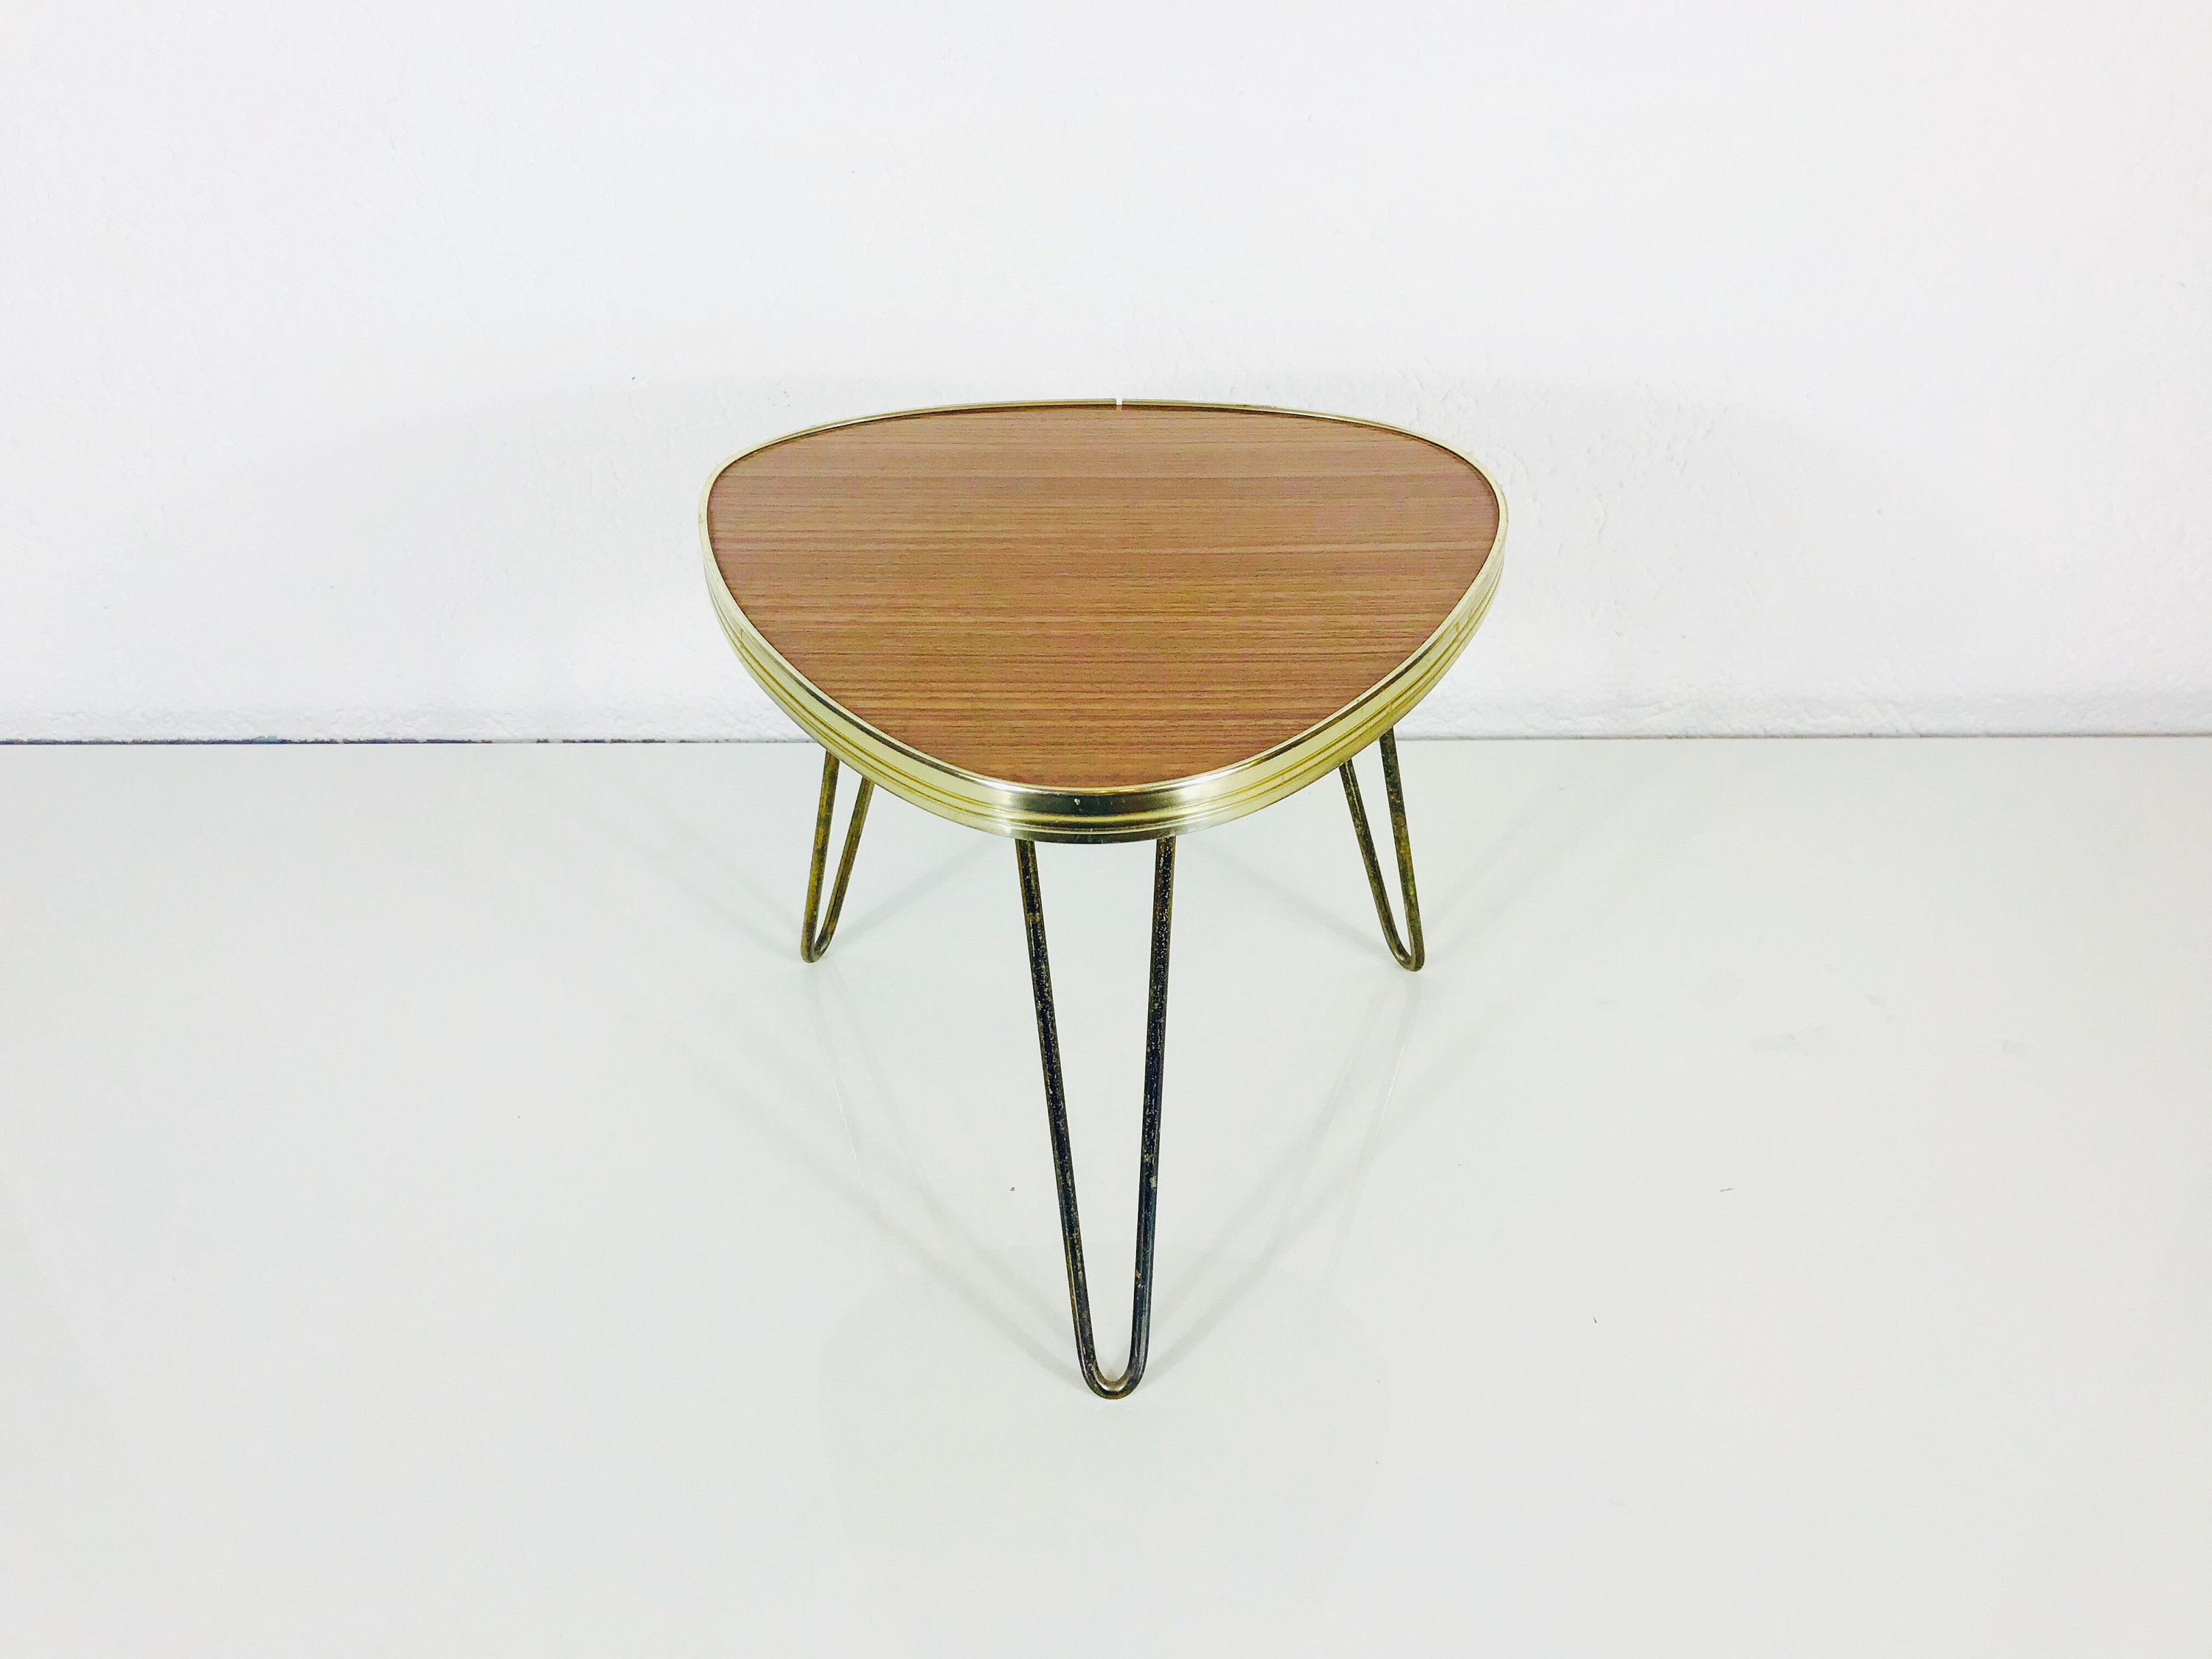 Triangle Coffee Table Wood.Brass Tripod Plant Stand Triangle Shape Coffee Table Wooden Top Germany 1960s